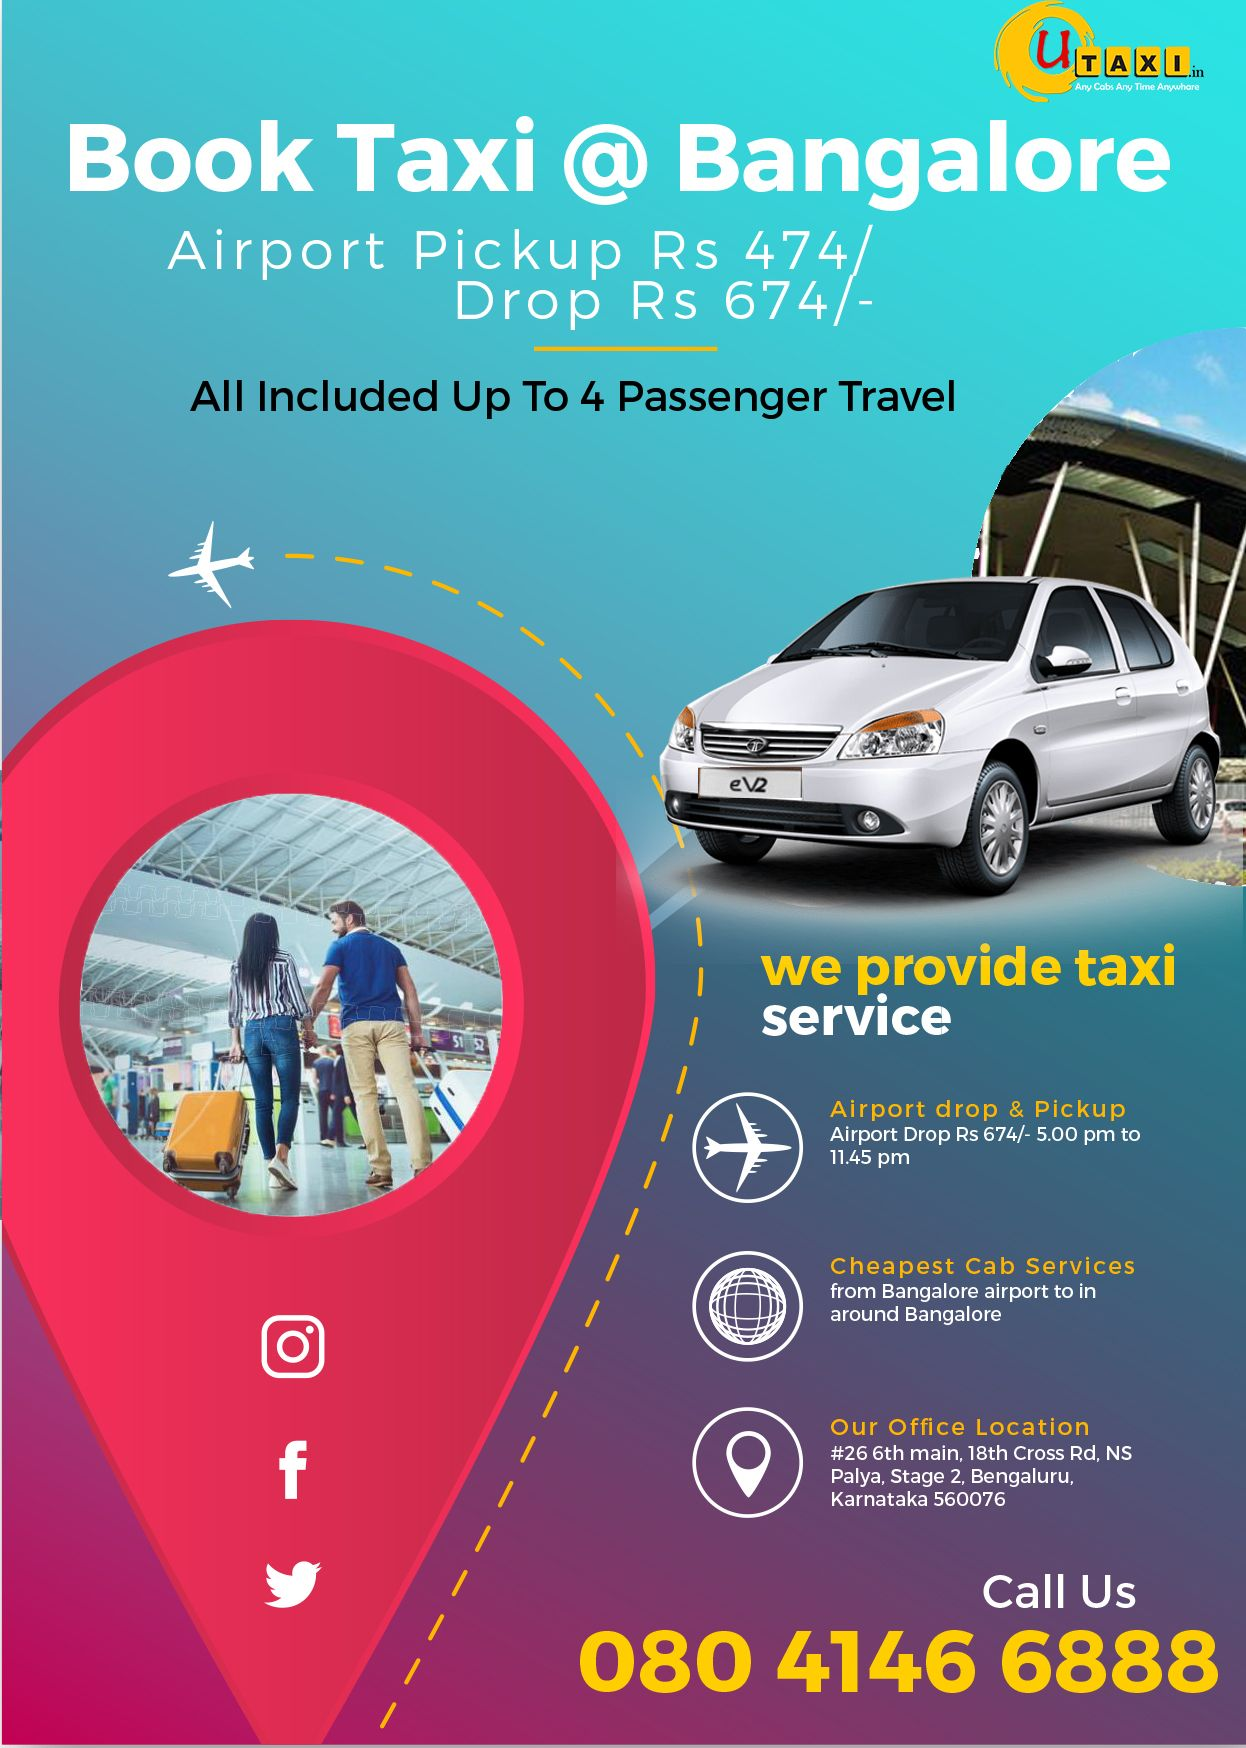 Every Customer Will Be Treated With Respect Reaching Your Destination In Timely Manner Complete Understanding Of Your Needs Safe Journ Taxi Cab Taxi Car Rental [ 1748 x 1246 Pixel ]